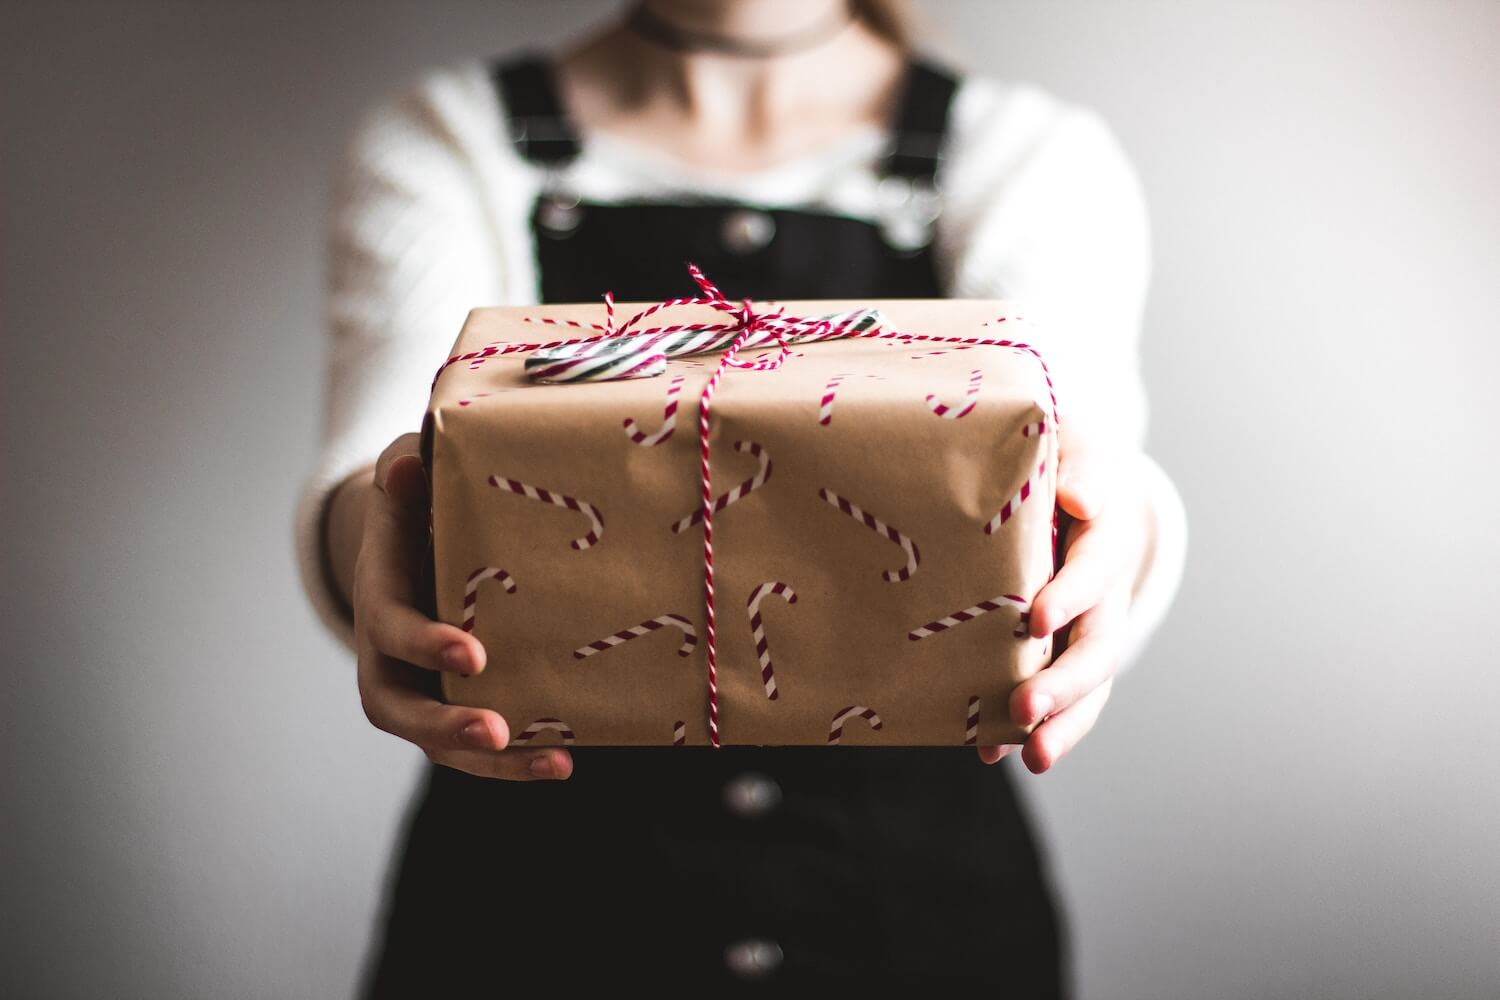 Photo of someone holding up a wrapped Christmas gift